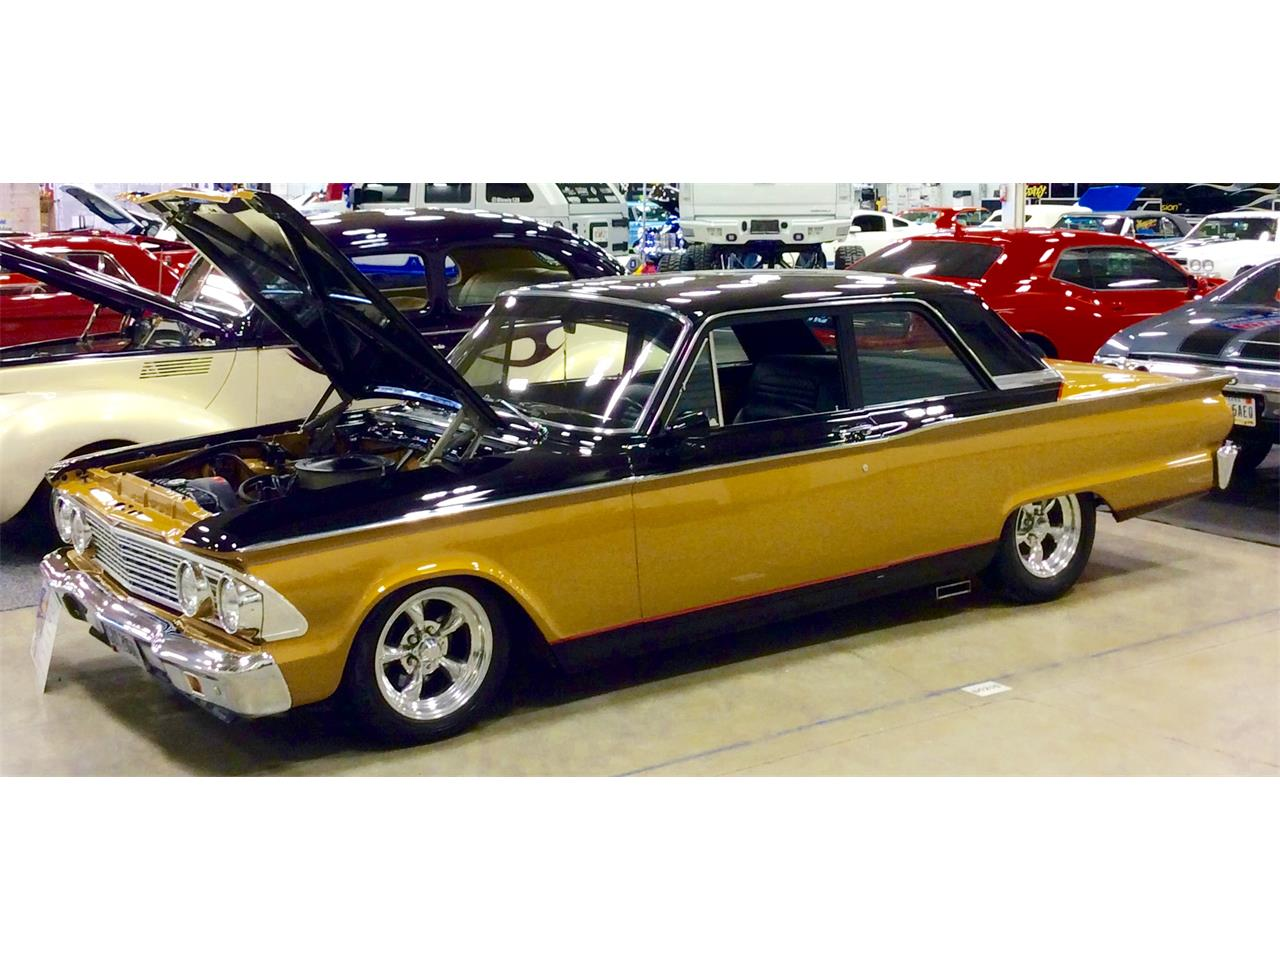 Large picture of 62 fairlane n6ks